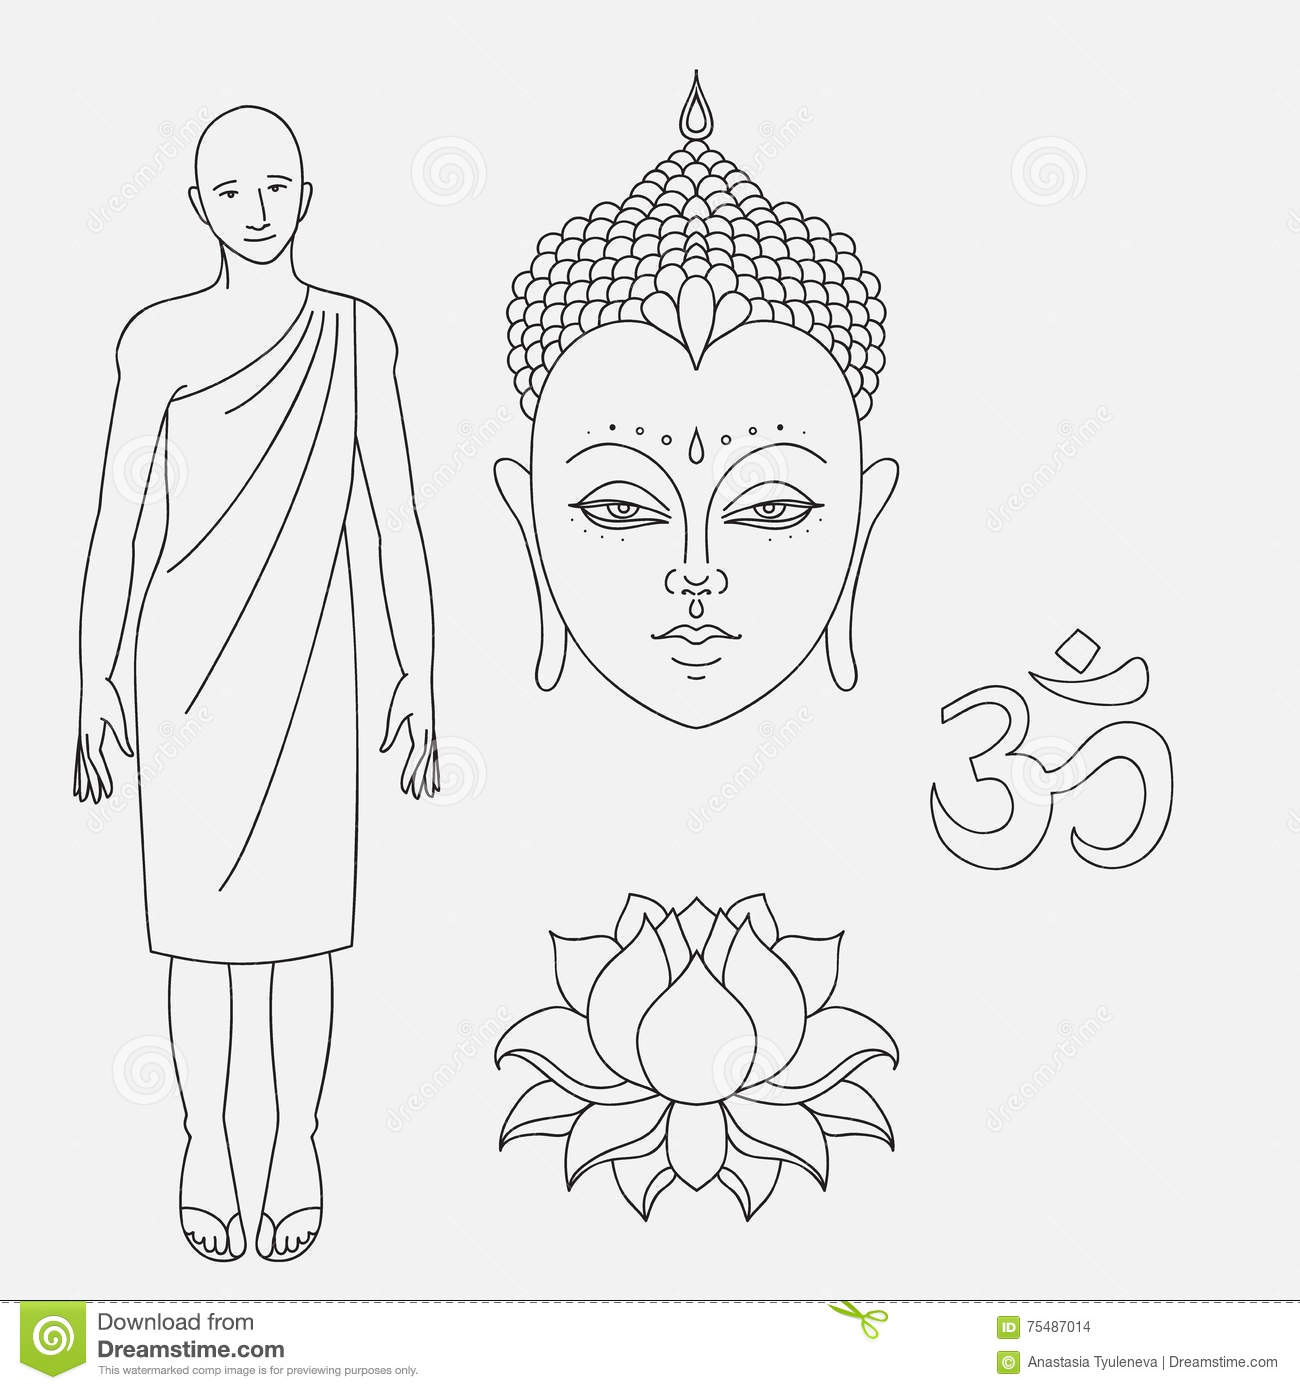 Head of buddha outline buddhist monk om sign hand drawn lotus head of buddha om sign outline buddhist monk hand drawn lotus flower isolated icons of mudra beautiful detailed serene vintage decorative elements izmirmasajfo